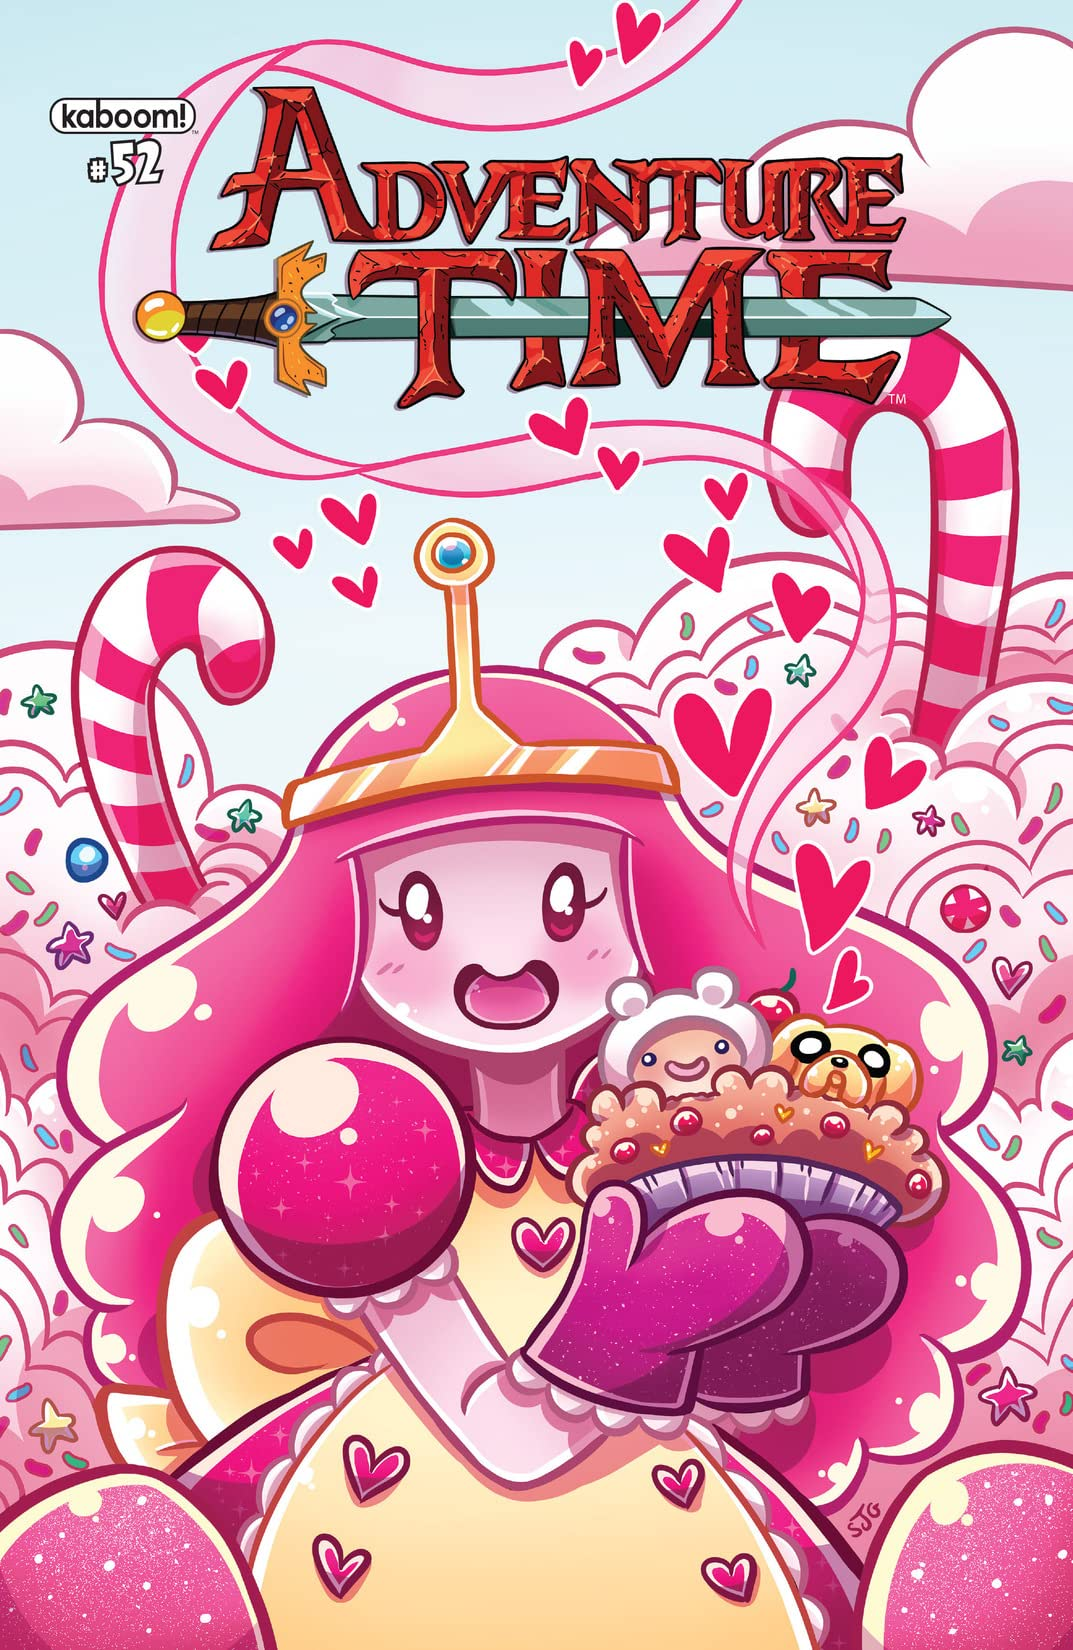 Adventure Time #52